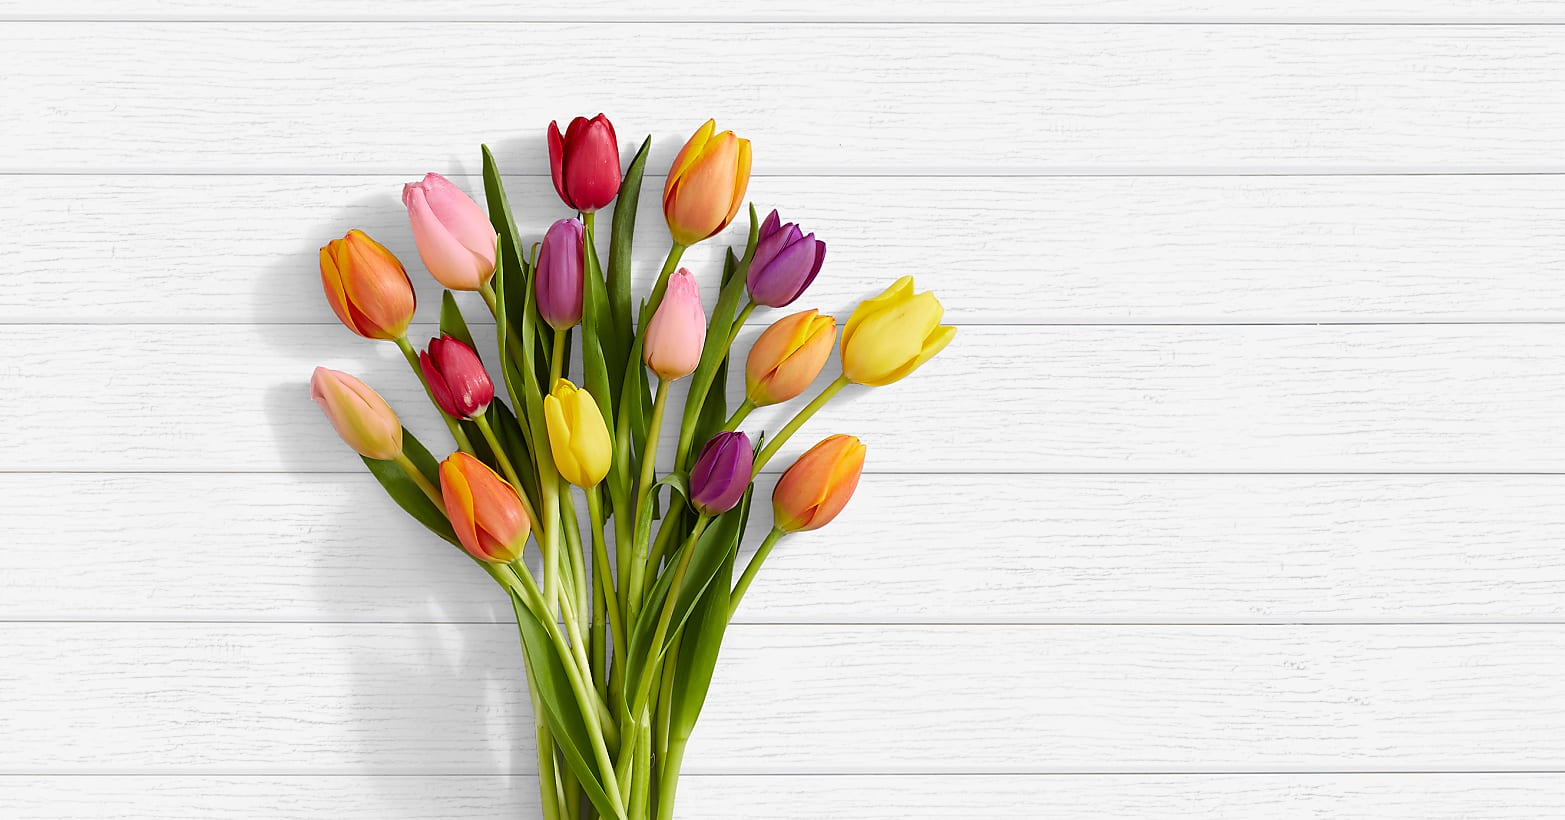 15 Multi-Colored Tulips - Image 1 Of 4